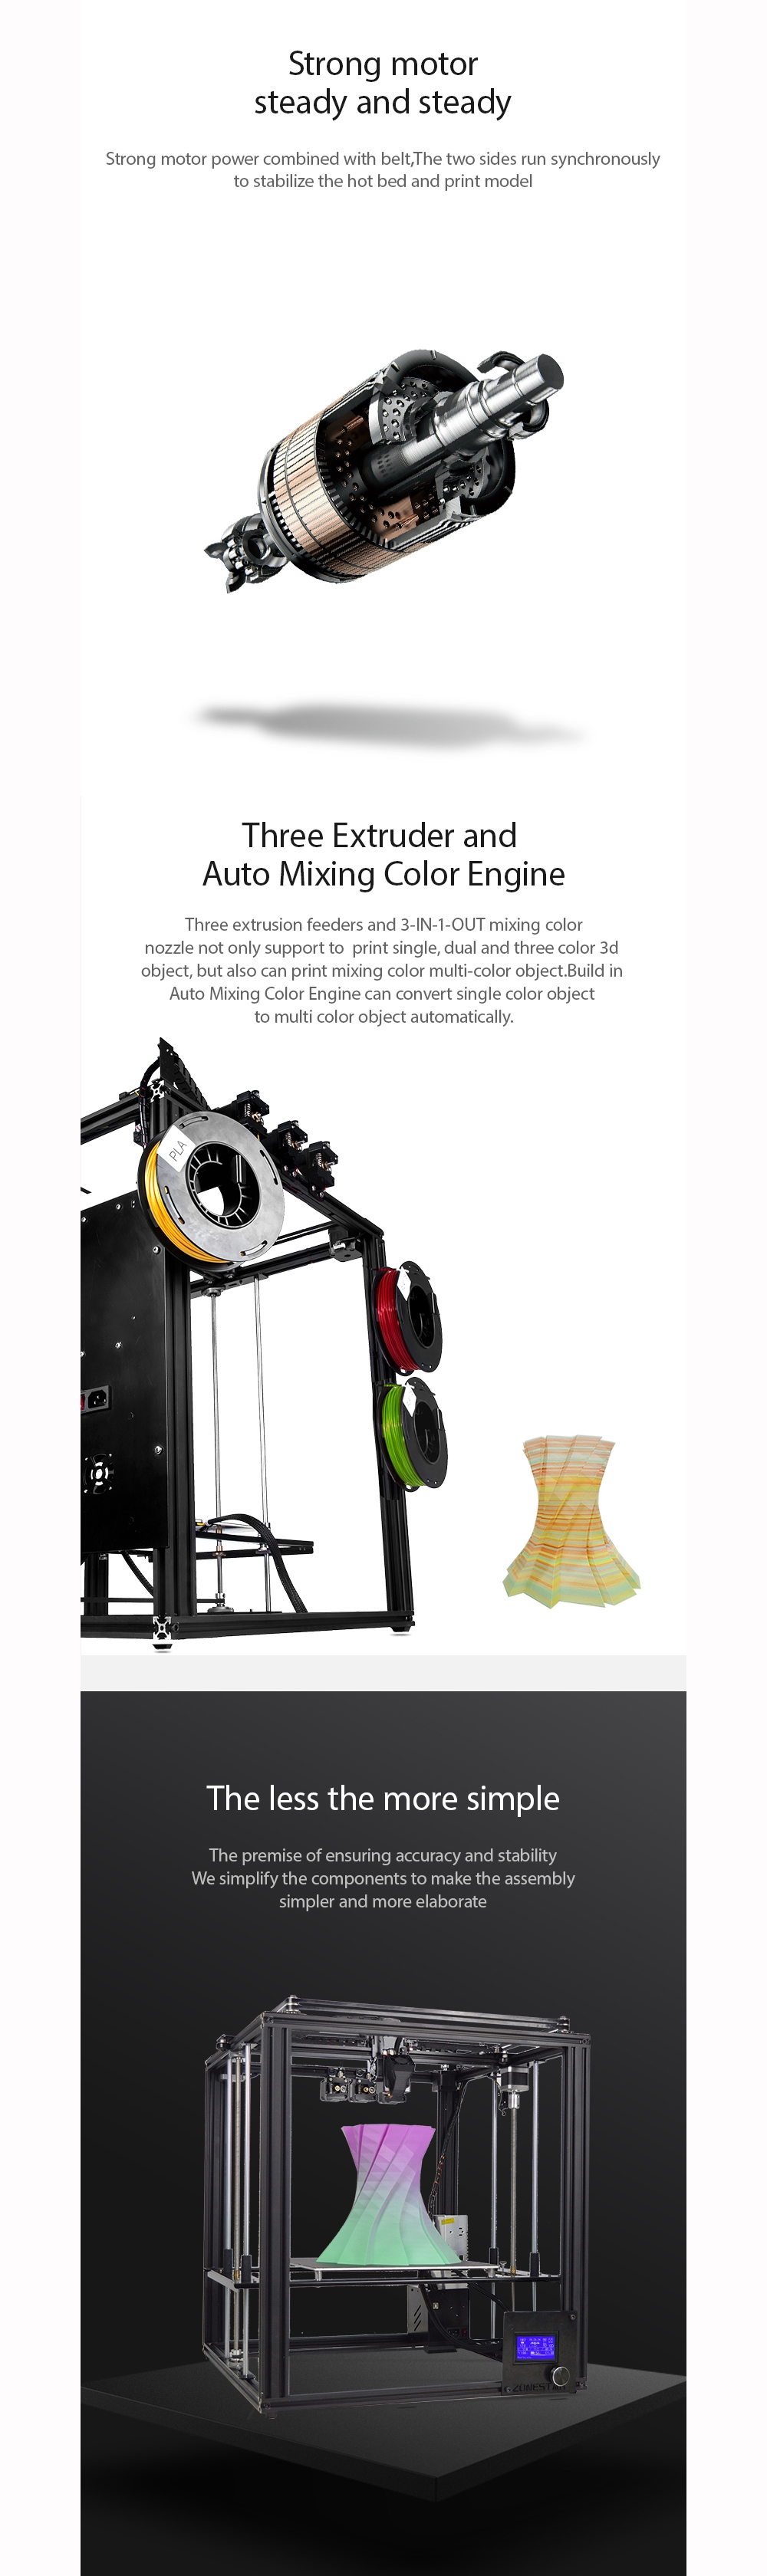 Zonestar Z9M3 3-in-1-out Mixed Color Full Metal 3D Printer 300*300*400mm Printing Size With Three Extruder/Auto Mixing Color Engin